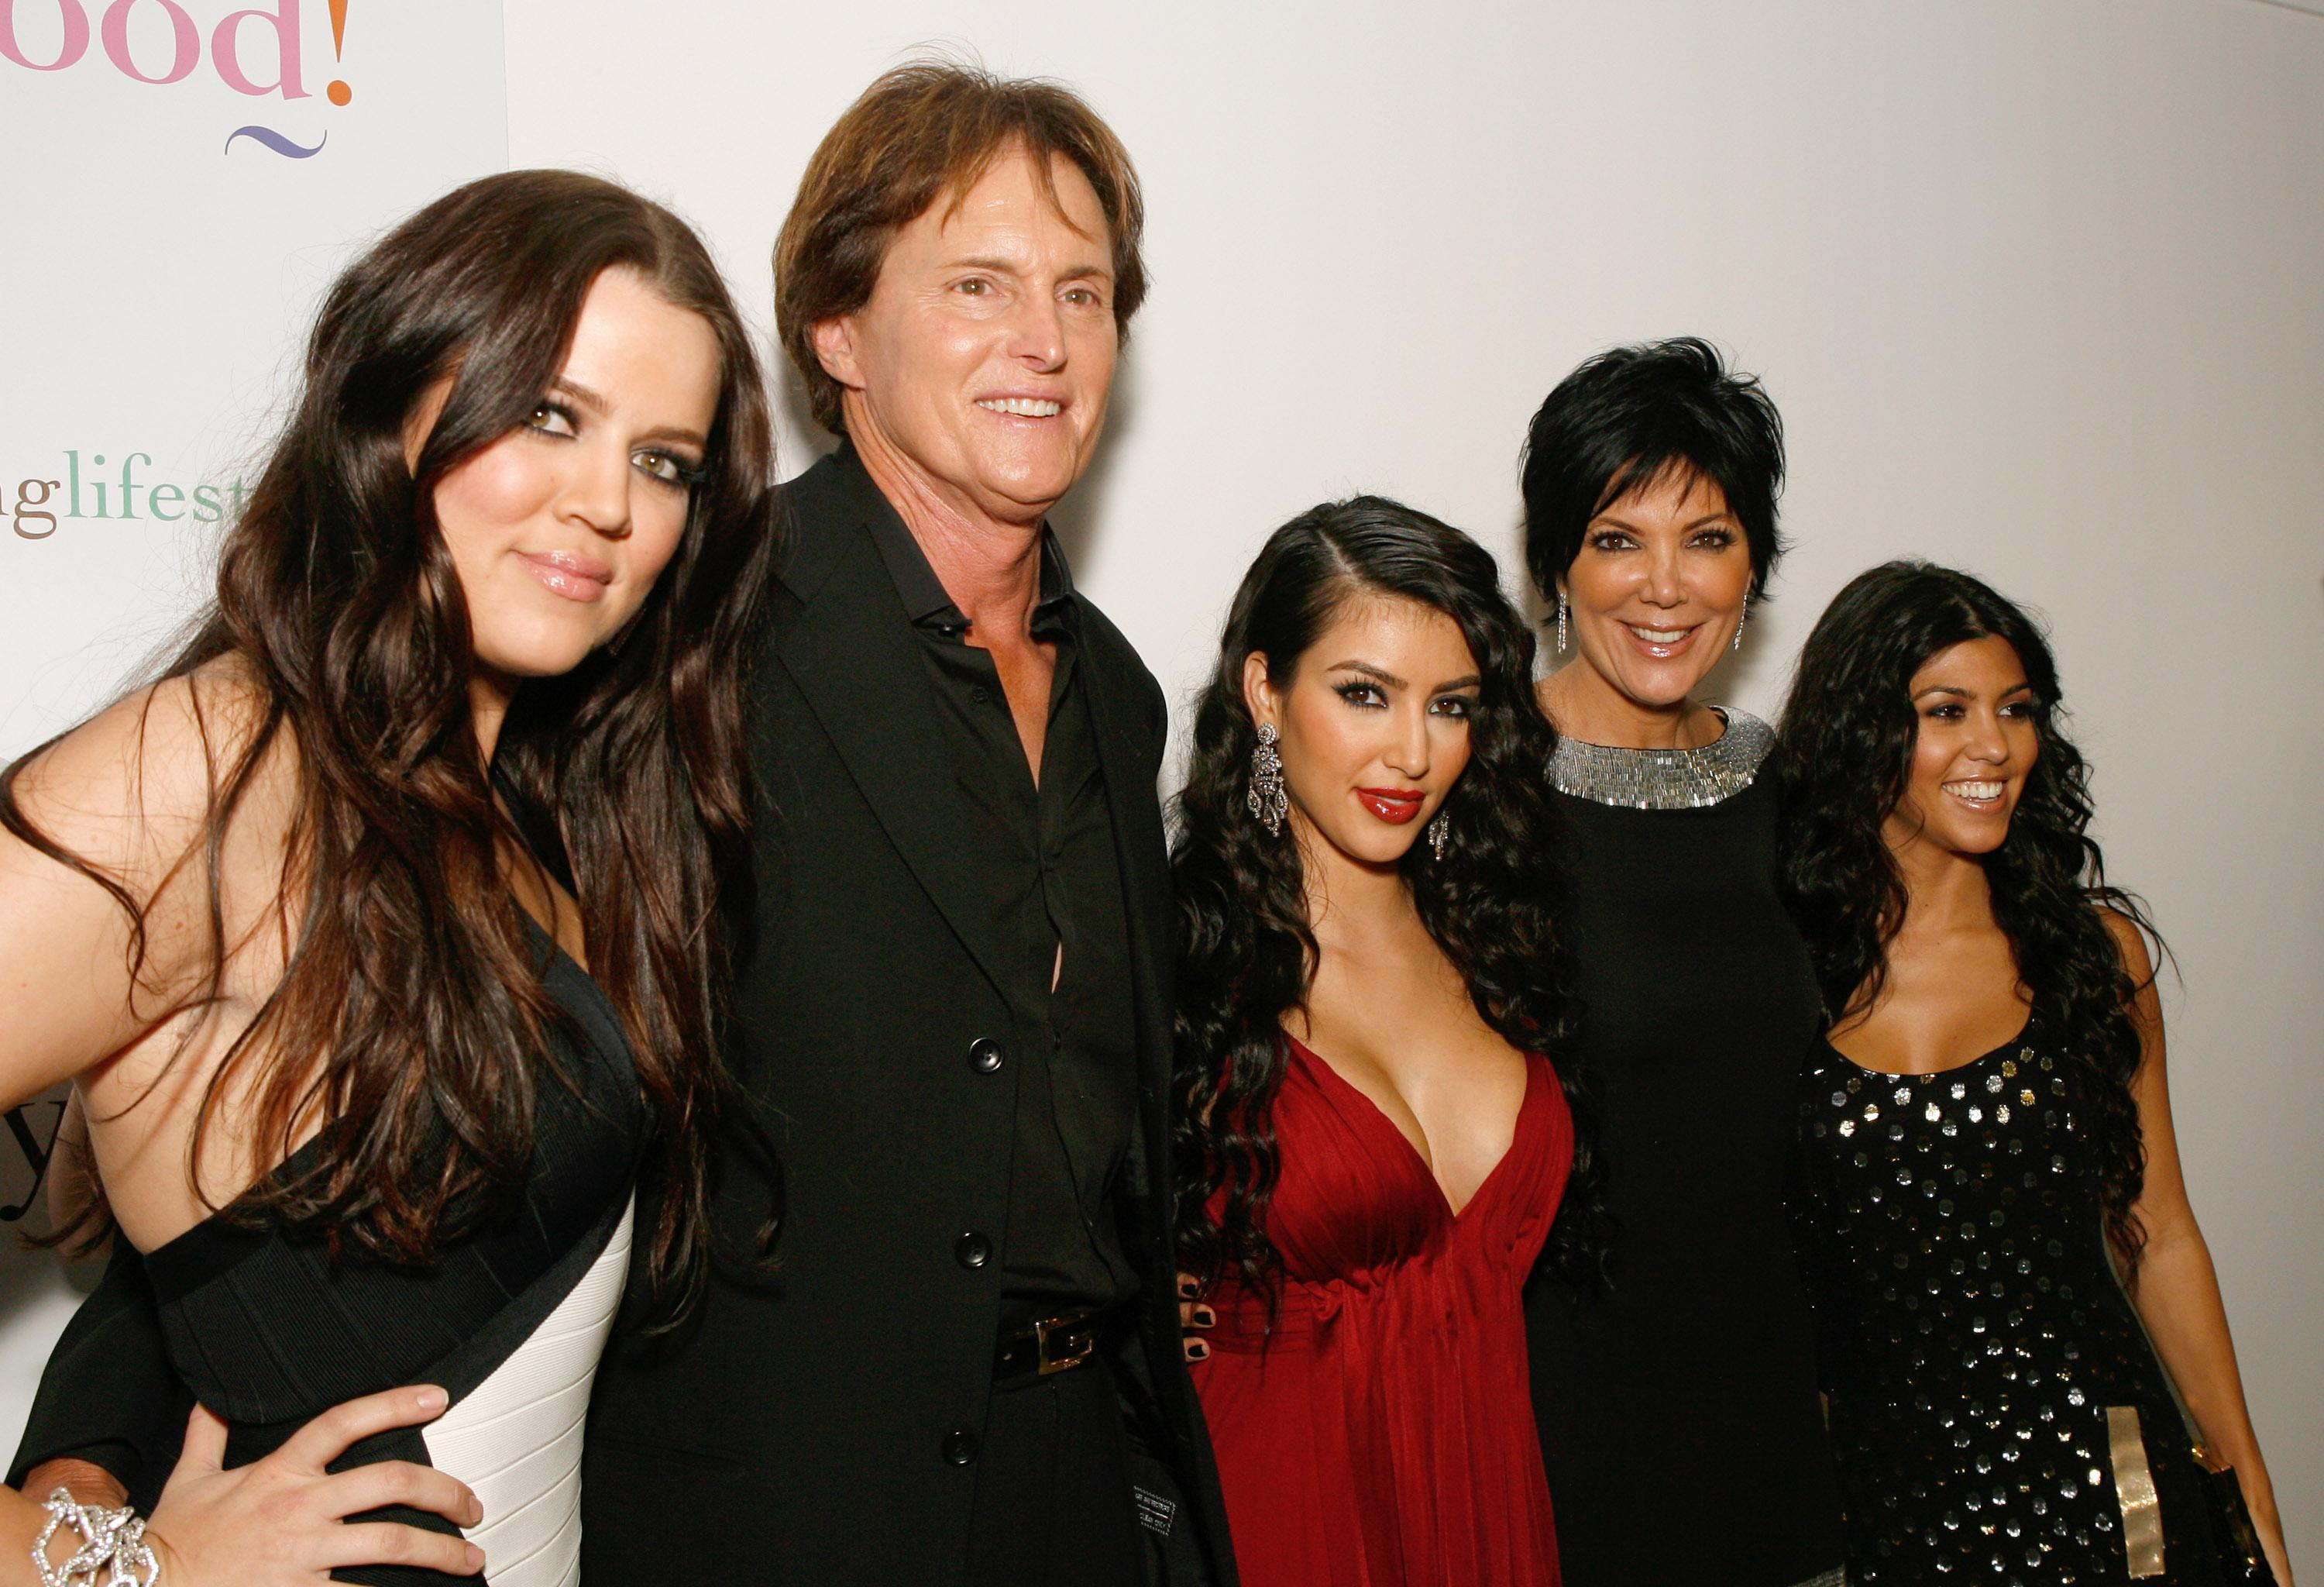 "LOS ANGELES - OCTOBER 09: Khloe Kardashian, Bruce Jenner, Kim Kardashian and Kris Jenner at the ""Keeping Up With The Kardashians"" premiere party on October 9, 2007 in West Hollywood, California. (Photo by Jeff Vespa/WireImage)"